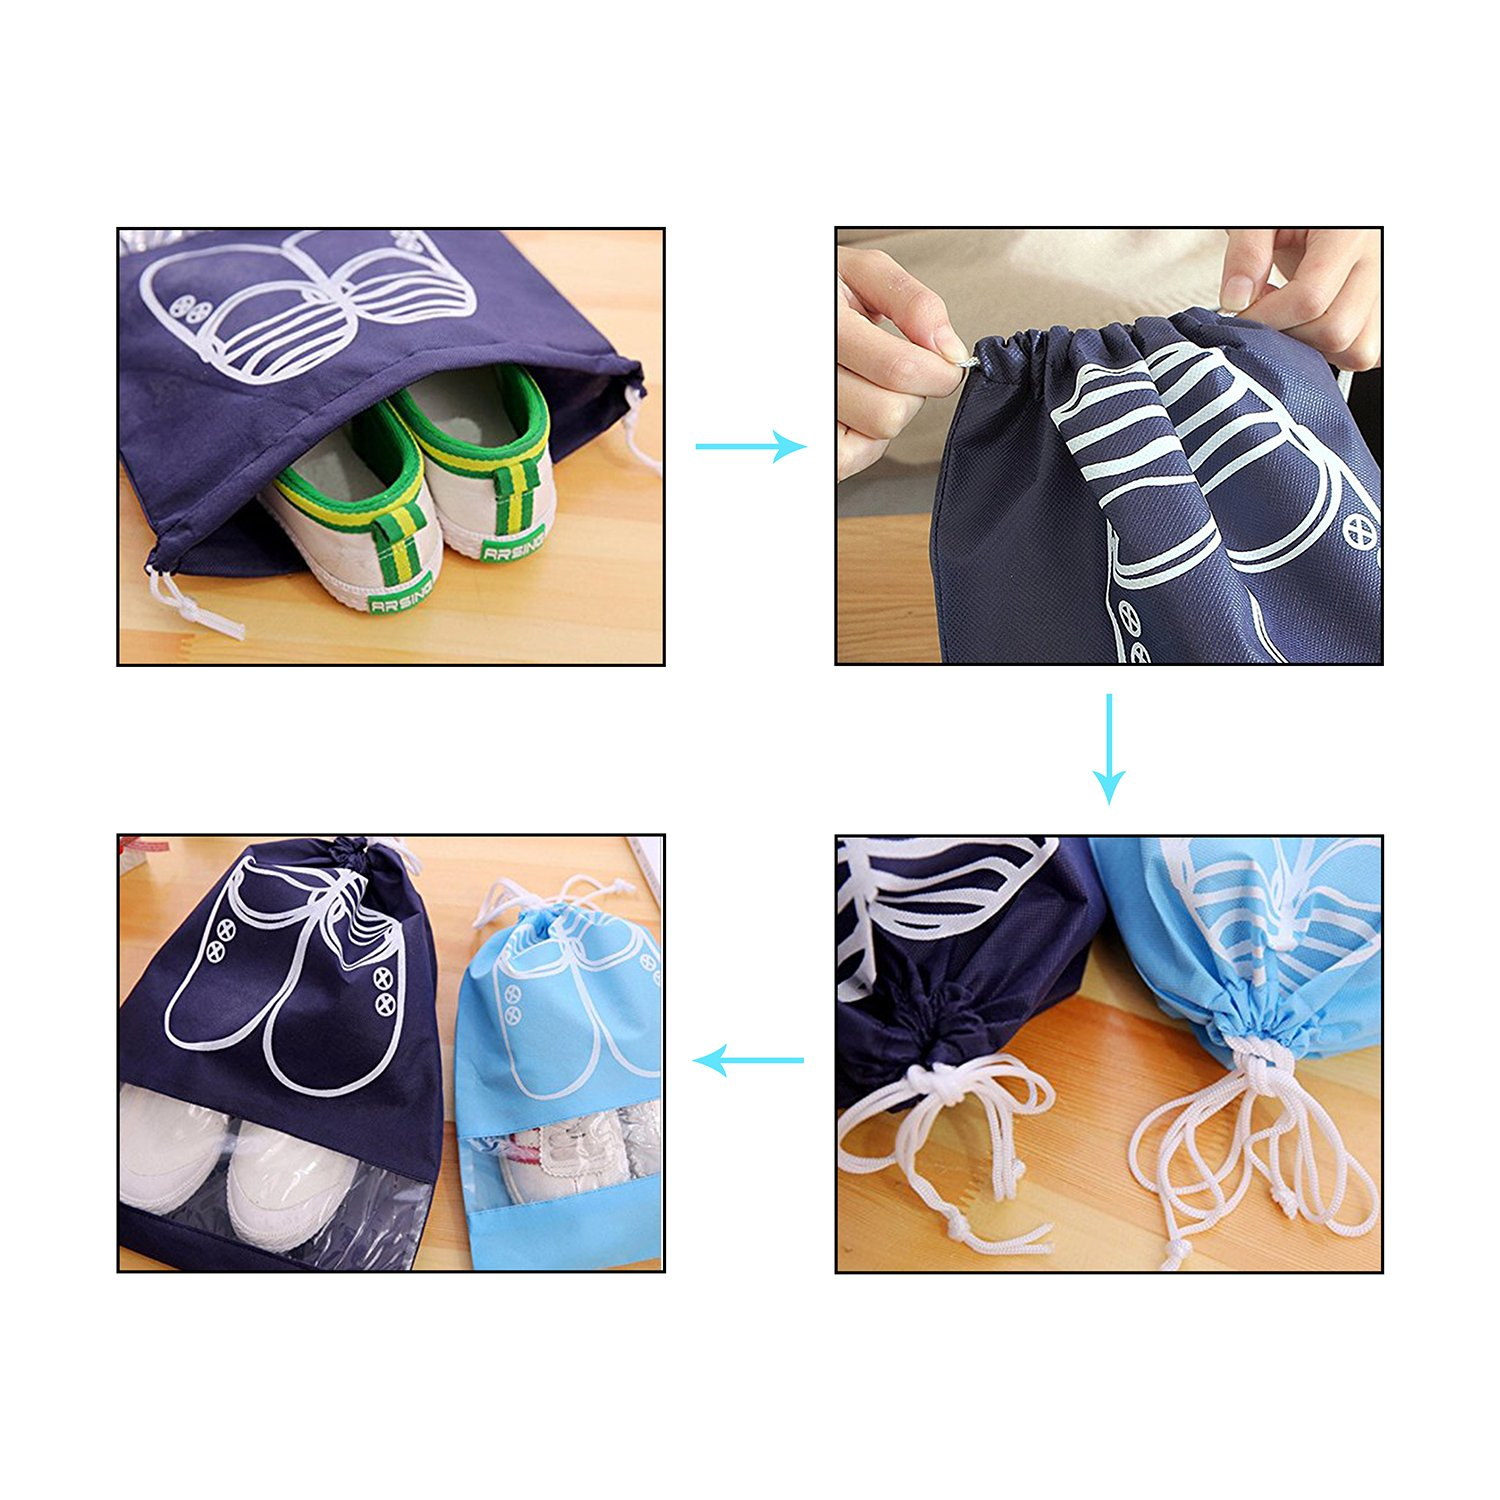 10 Pcs Travel Dust-proof Shoe Bags with Drawstring and Transparent Window Shoe Organizer Space Saving Storage Bags(5pcs XL and 5pcs L) by TGbranch (Image #5)